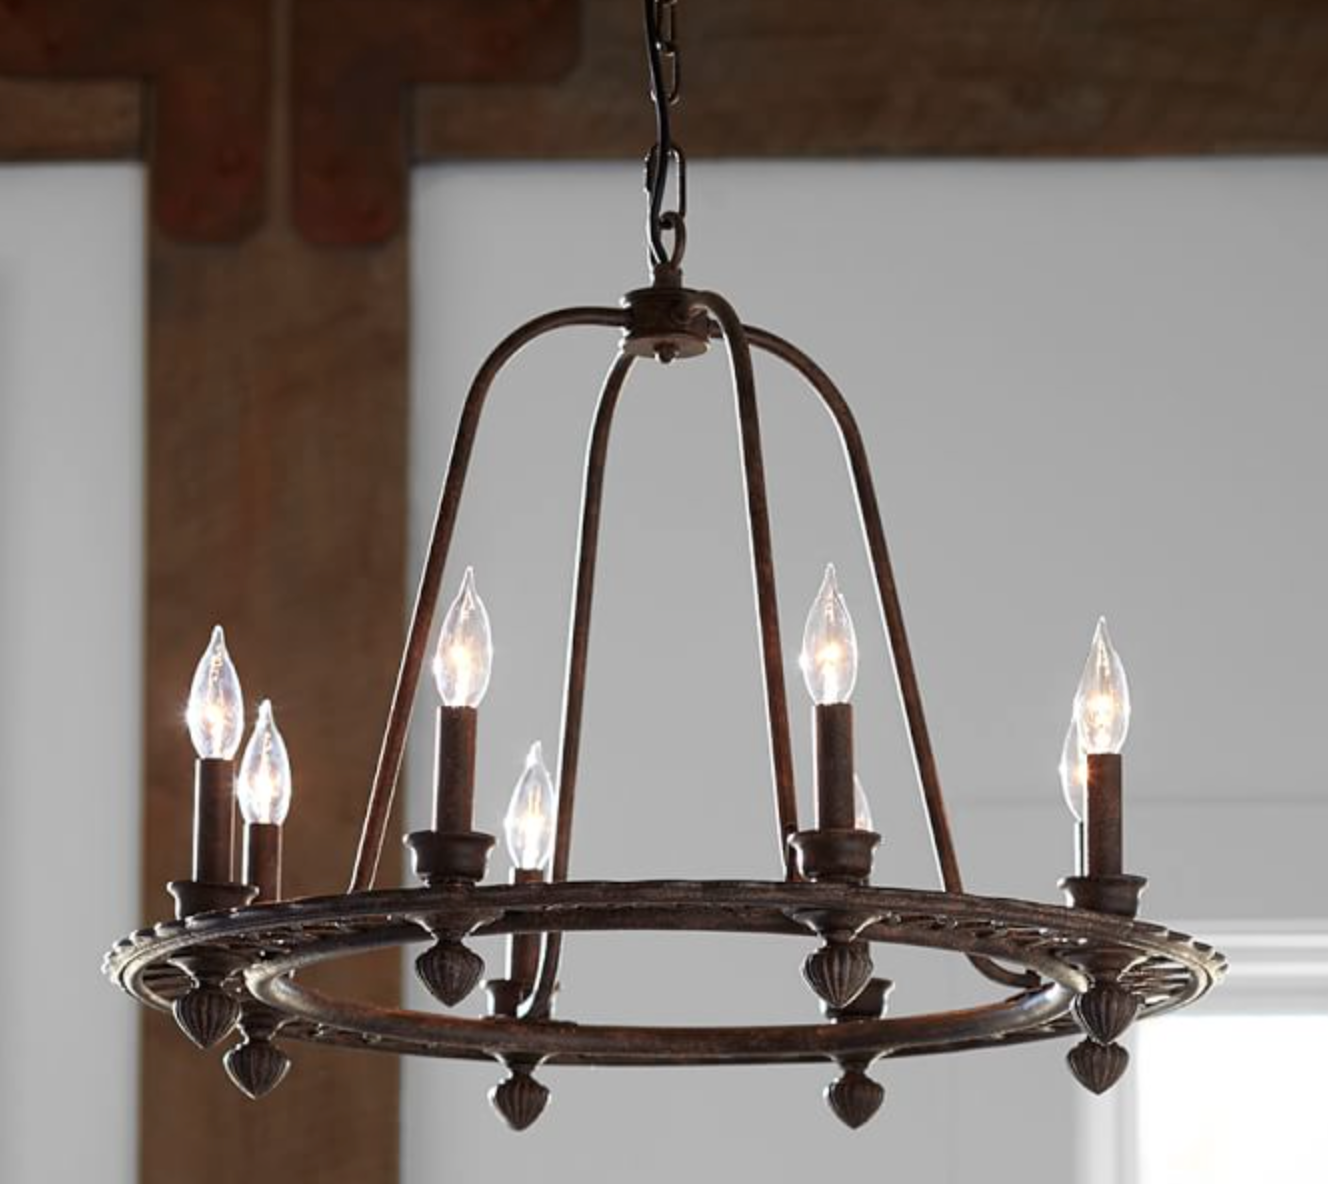 Pottery Barn Bronze Chandelier: SoPo Cottage: Lighting, Lighting, Lighting